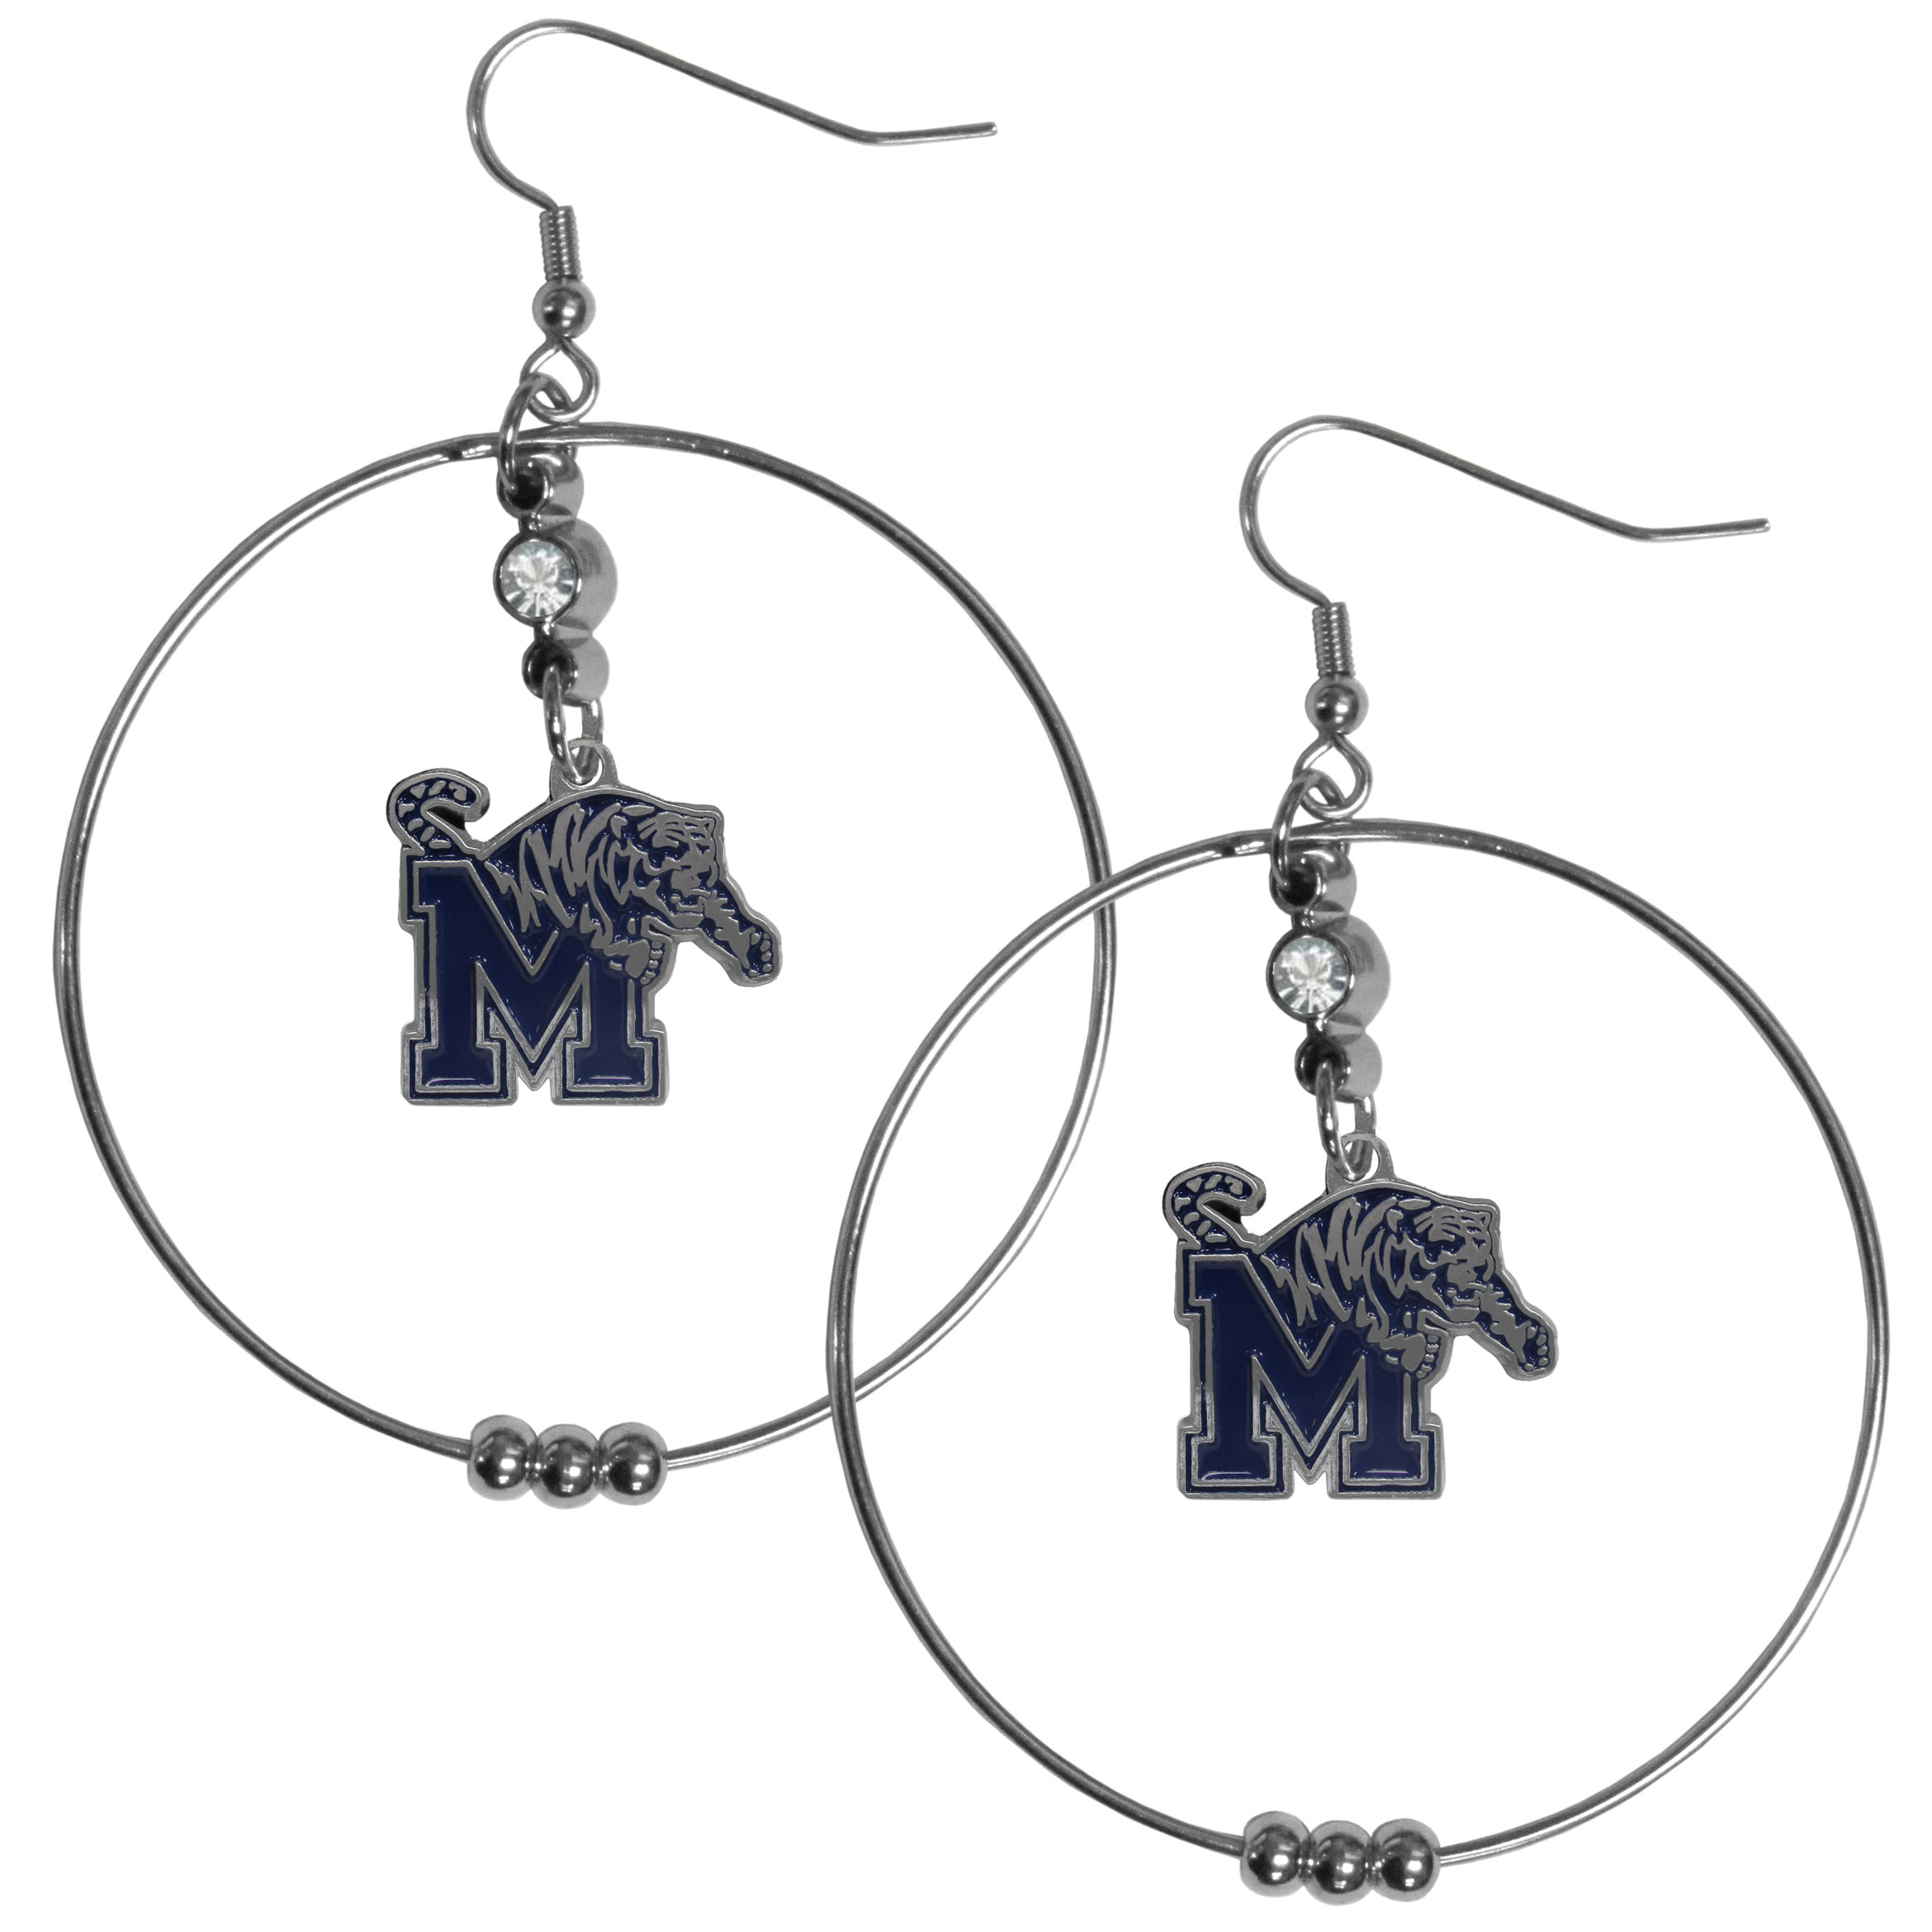 Memphis Tigers 2 Inch Hoop Earrings - Our large hoop earrings have a fully cast and enameled Memphis Tigers charm with enameled detail and a high polish nickel free chrome finish and rhinestone access. Hypoallergenic fishhook posts.